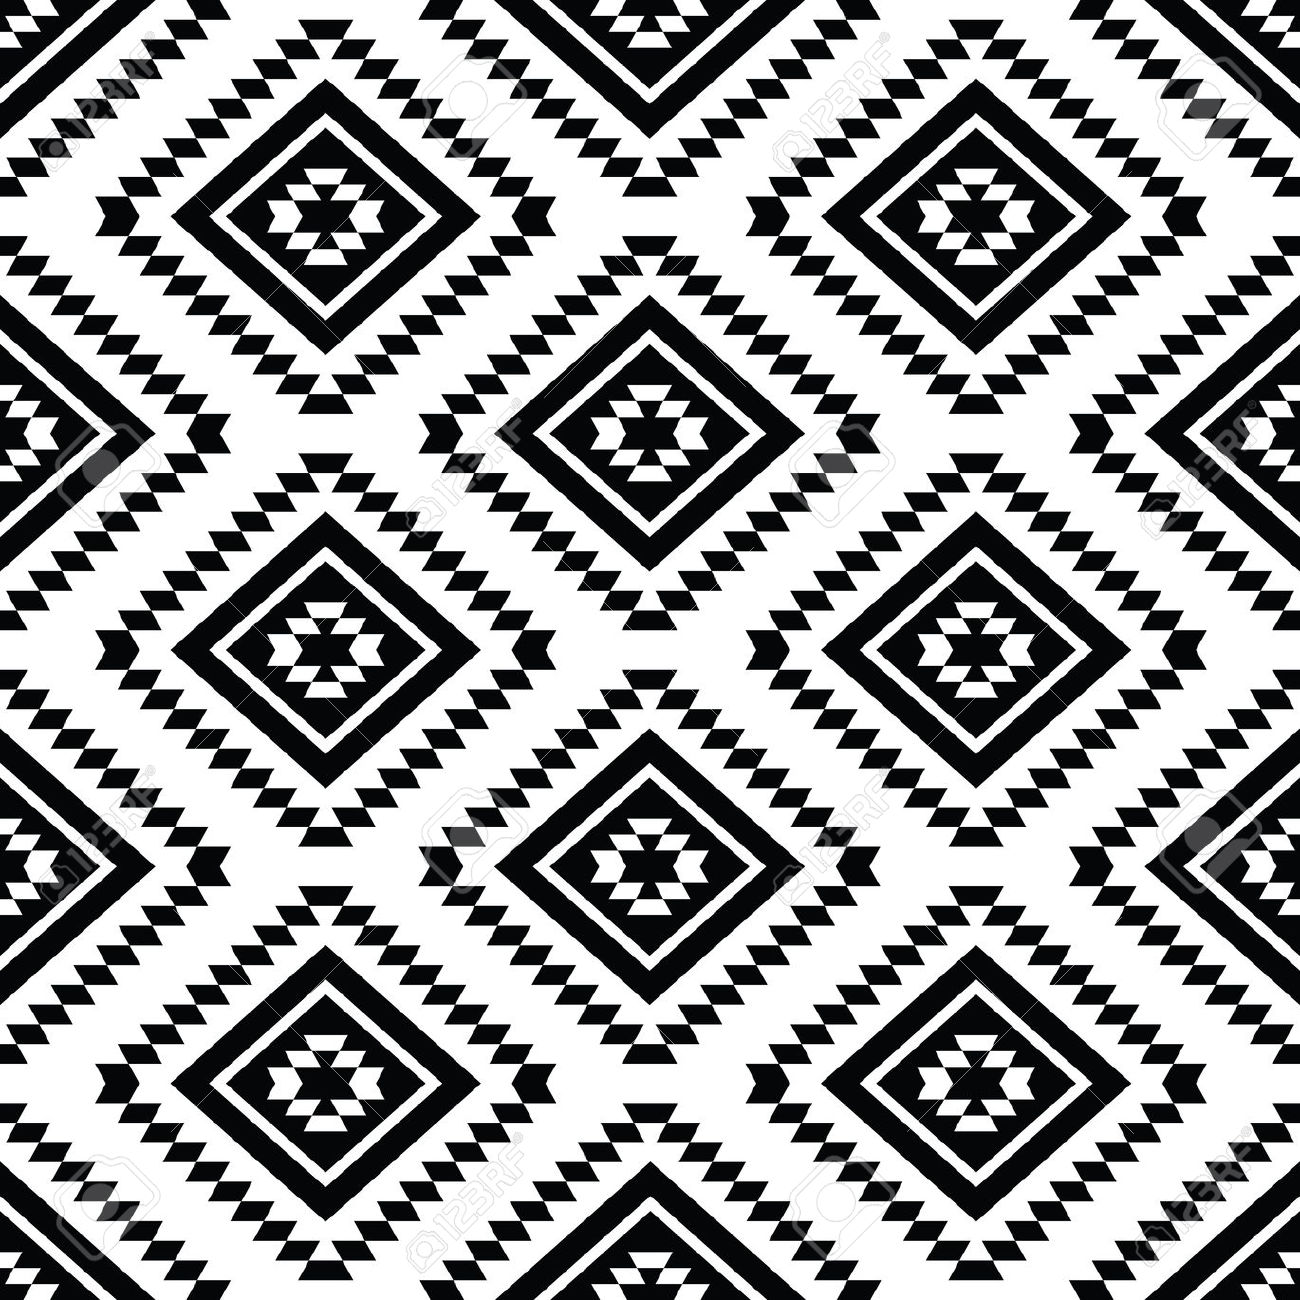 27 Best Aztec Patterns Wallpapers Design Trends 1300x1300